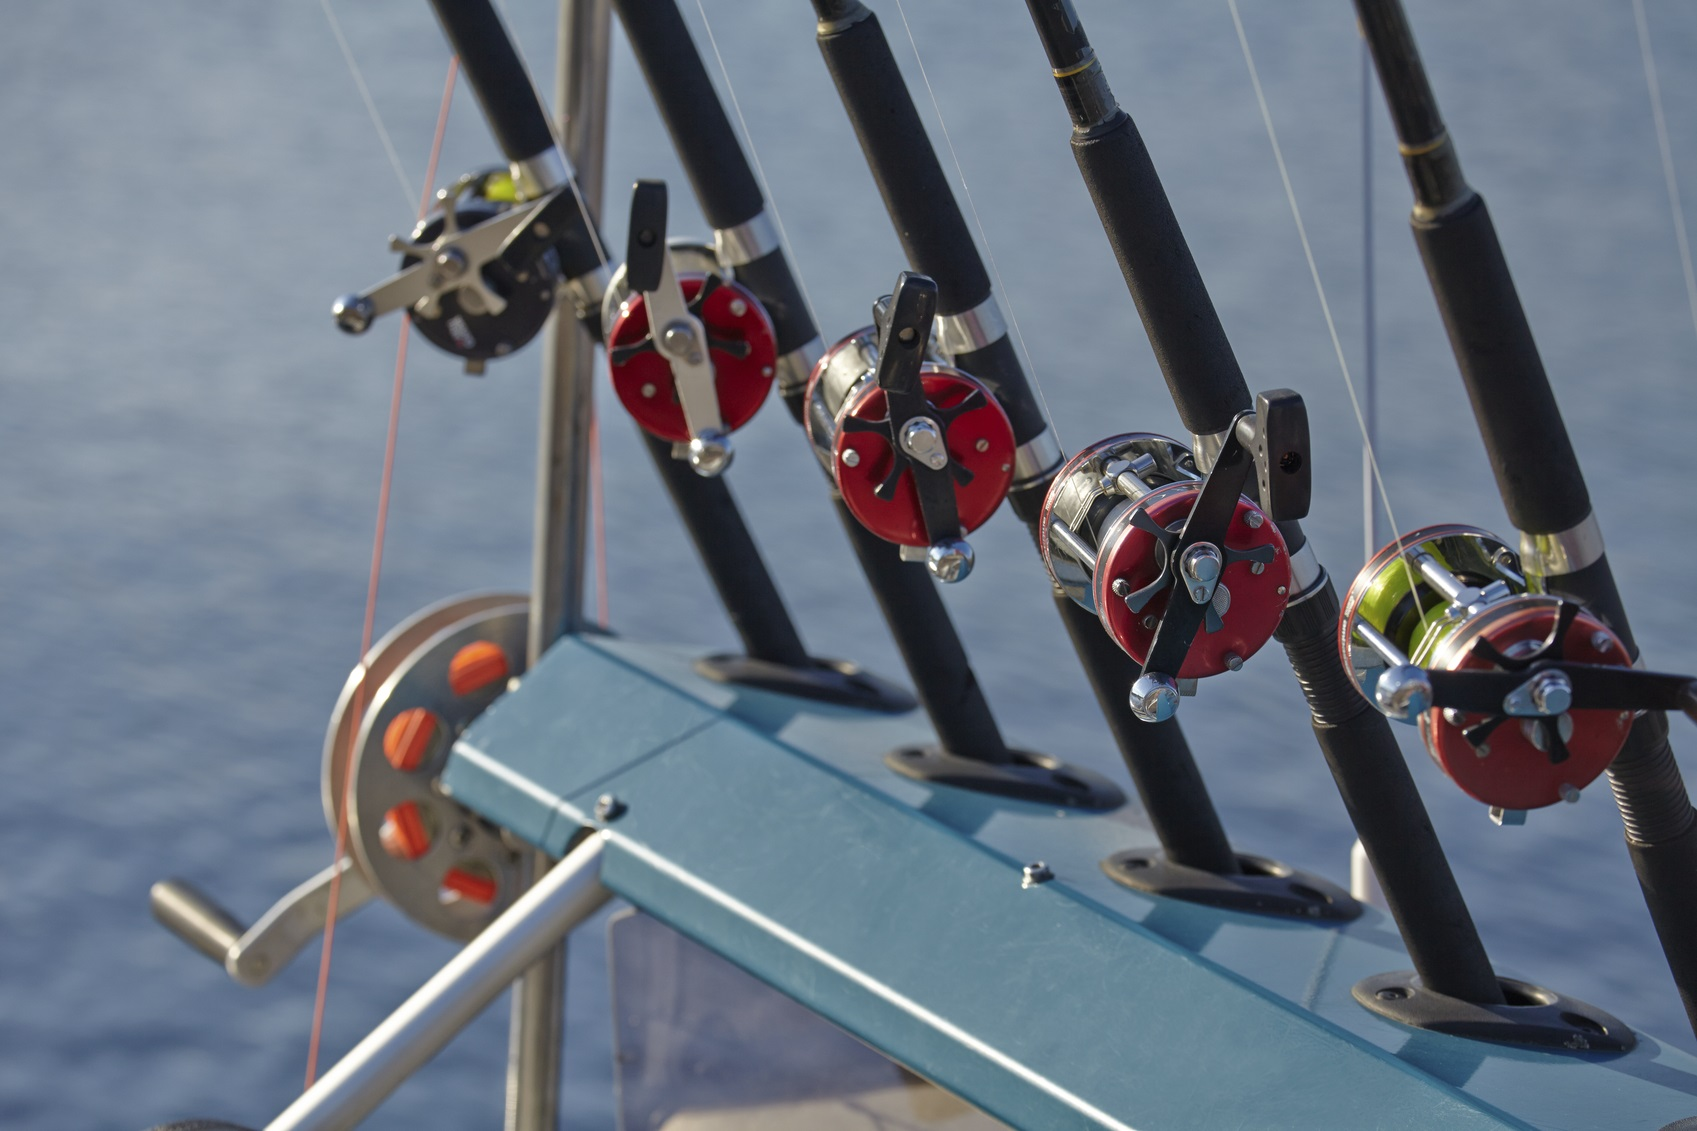 saltwater fishing tips for rods and reels